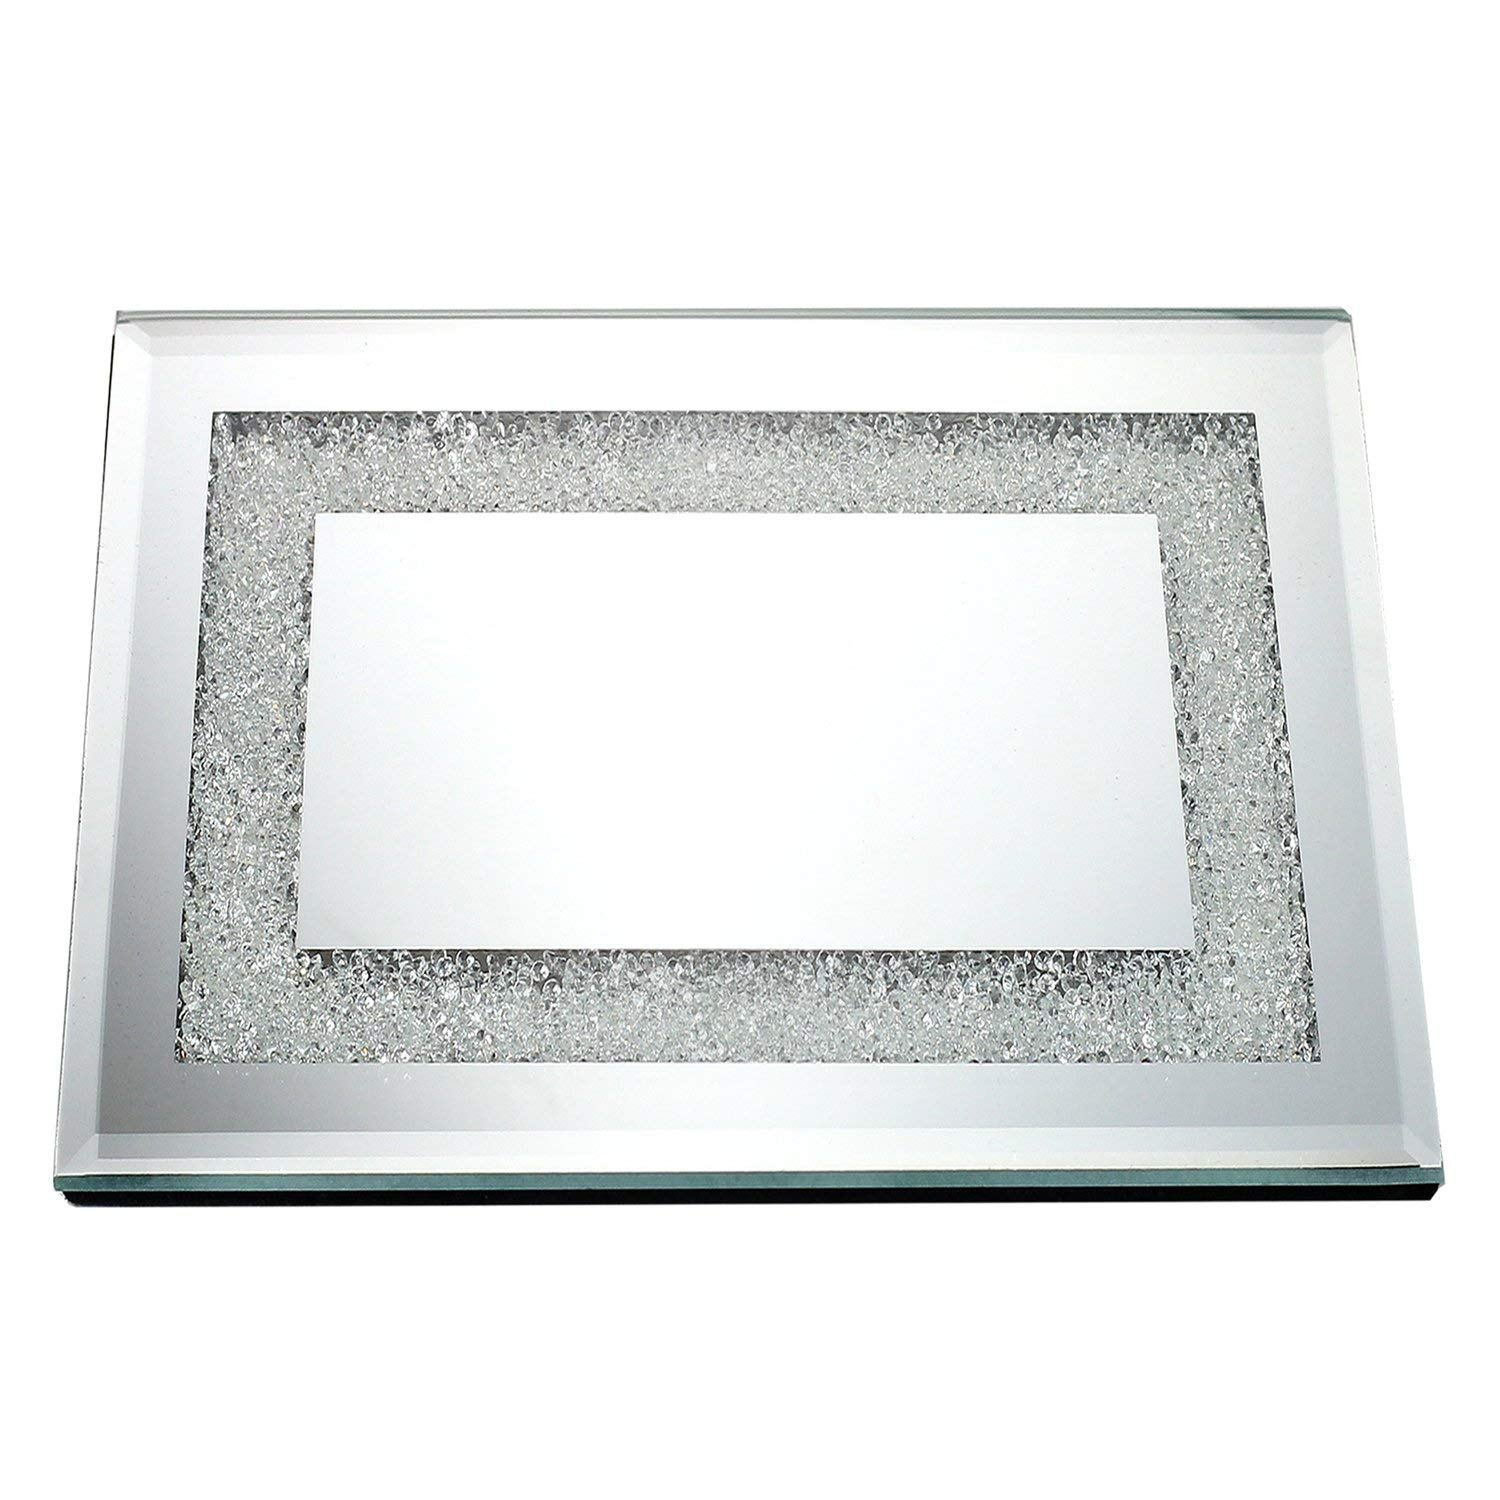 "Glass Mirror Tray with Crushed Glass Border (12.5"" x 6.5"")"